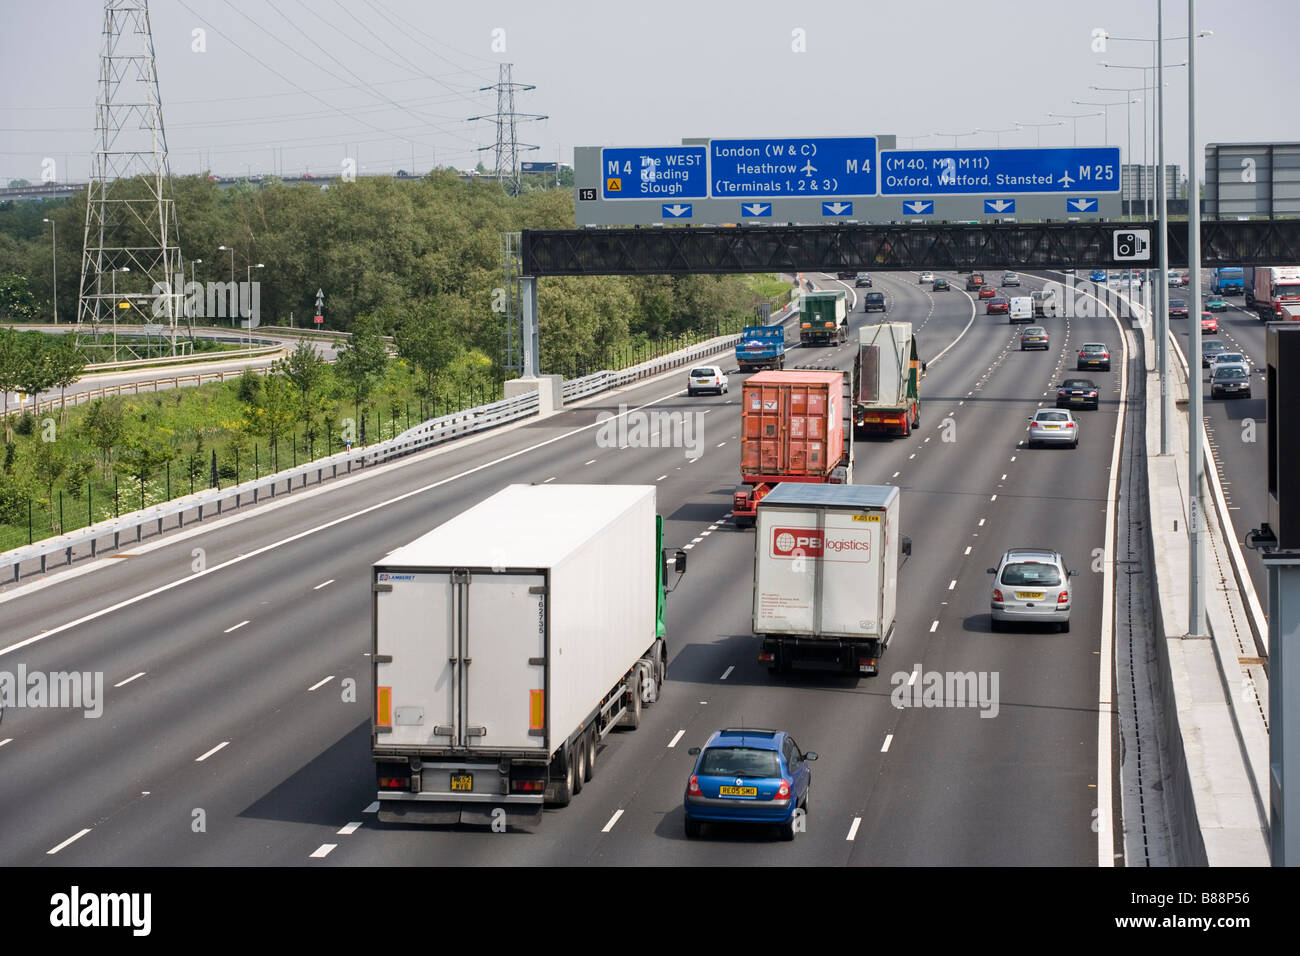 Junction 15 Stock Photos & Junction 15 Stock Images - Alamy